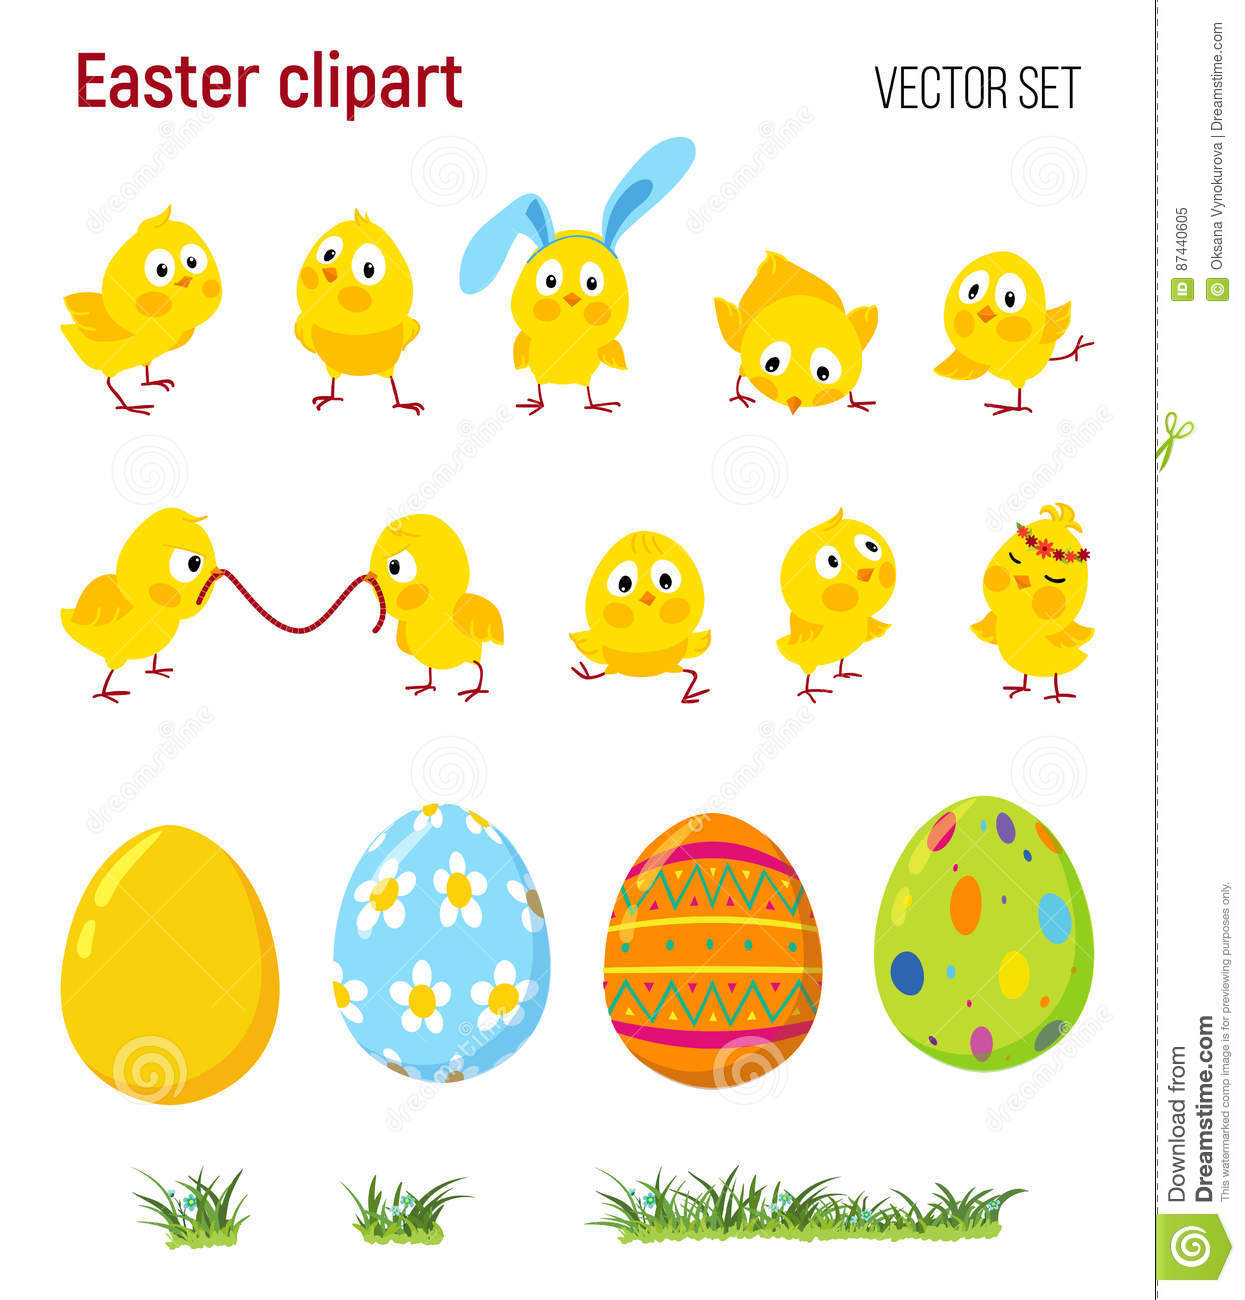 easter decoration clipart - photo #34